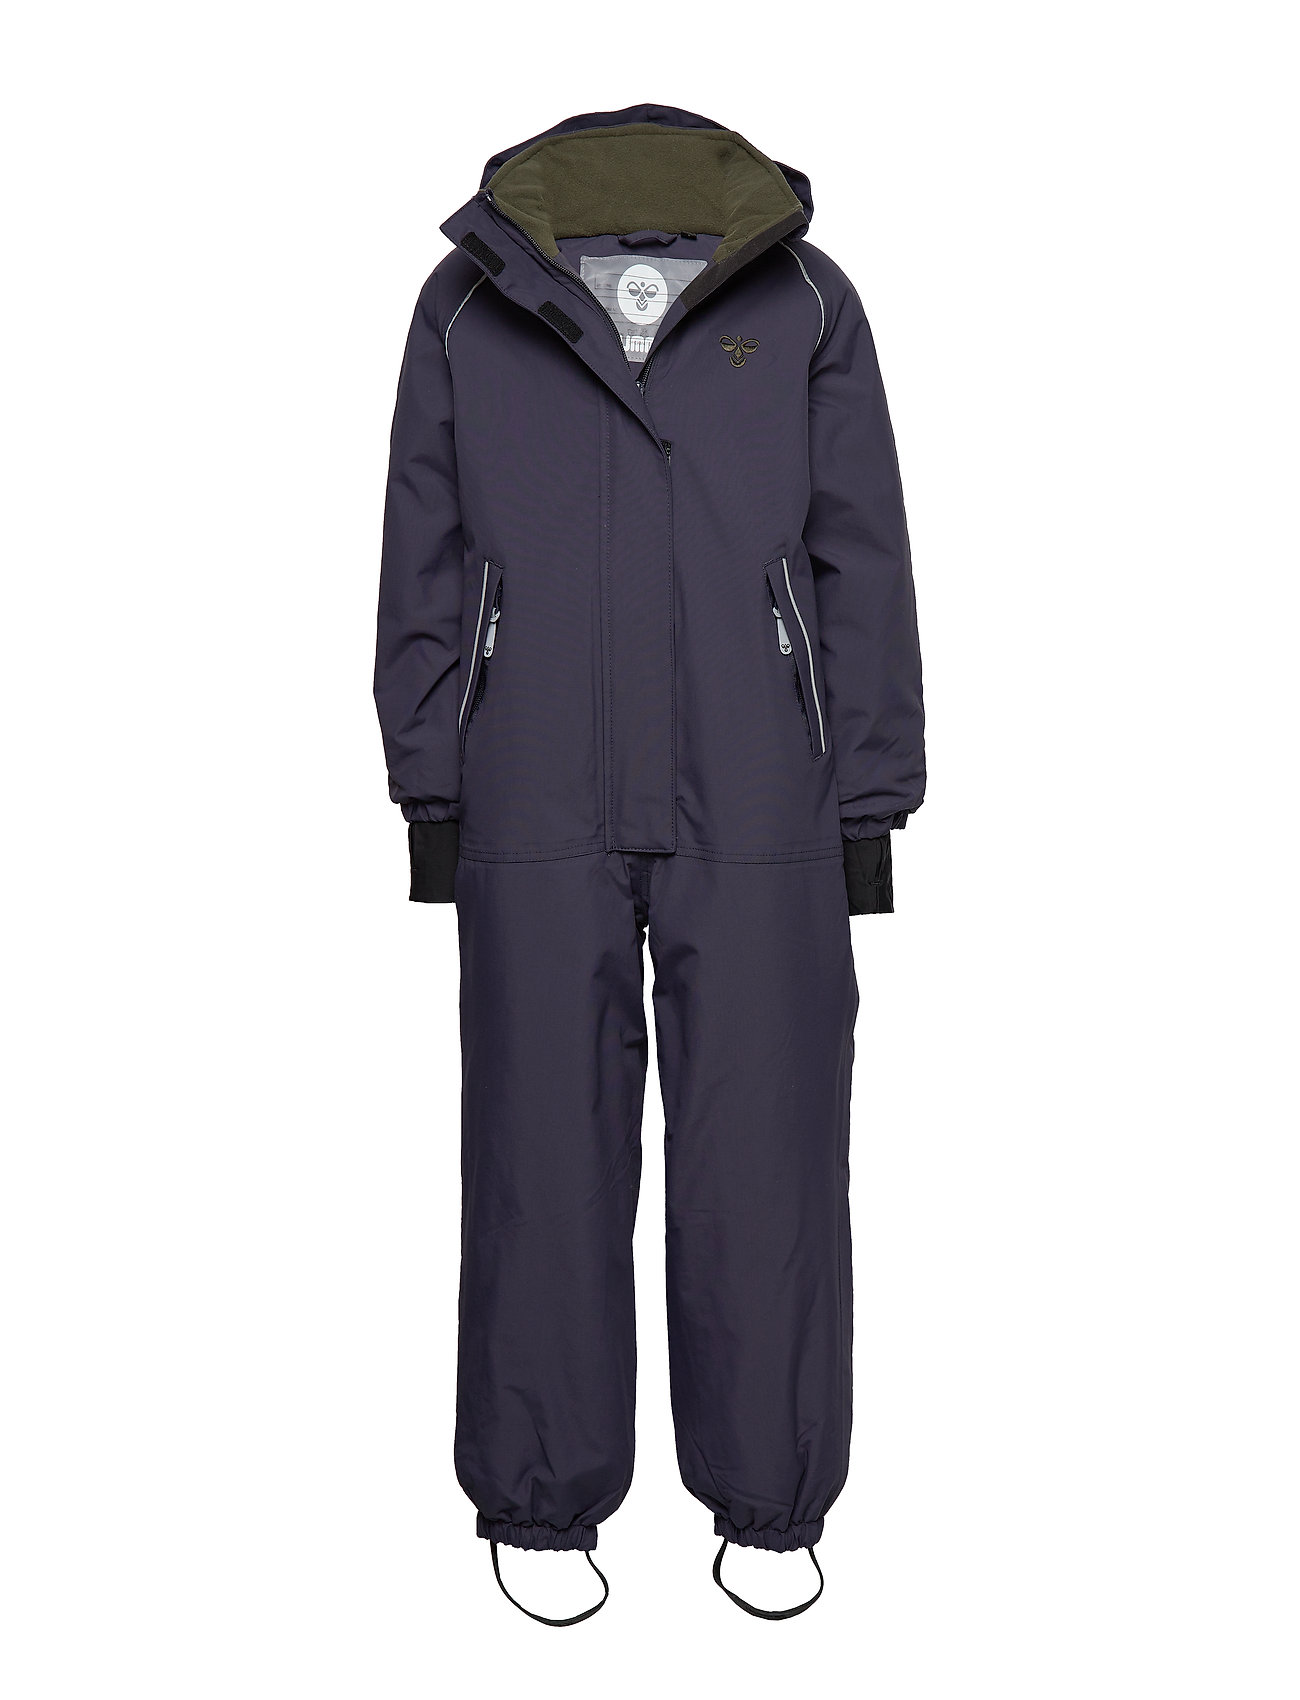 Hummel hmlPOWDER SNOWSUIT - GRAPHITE